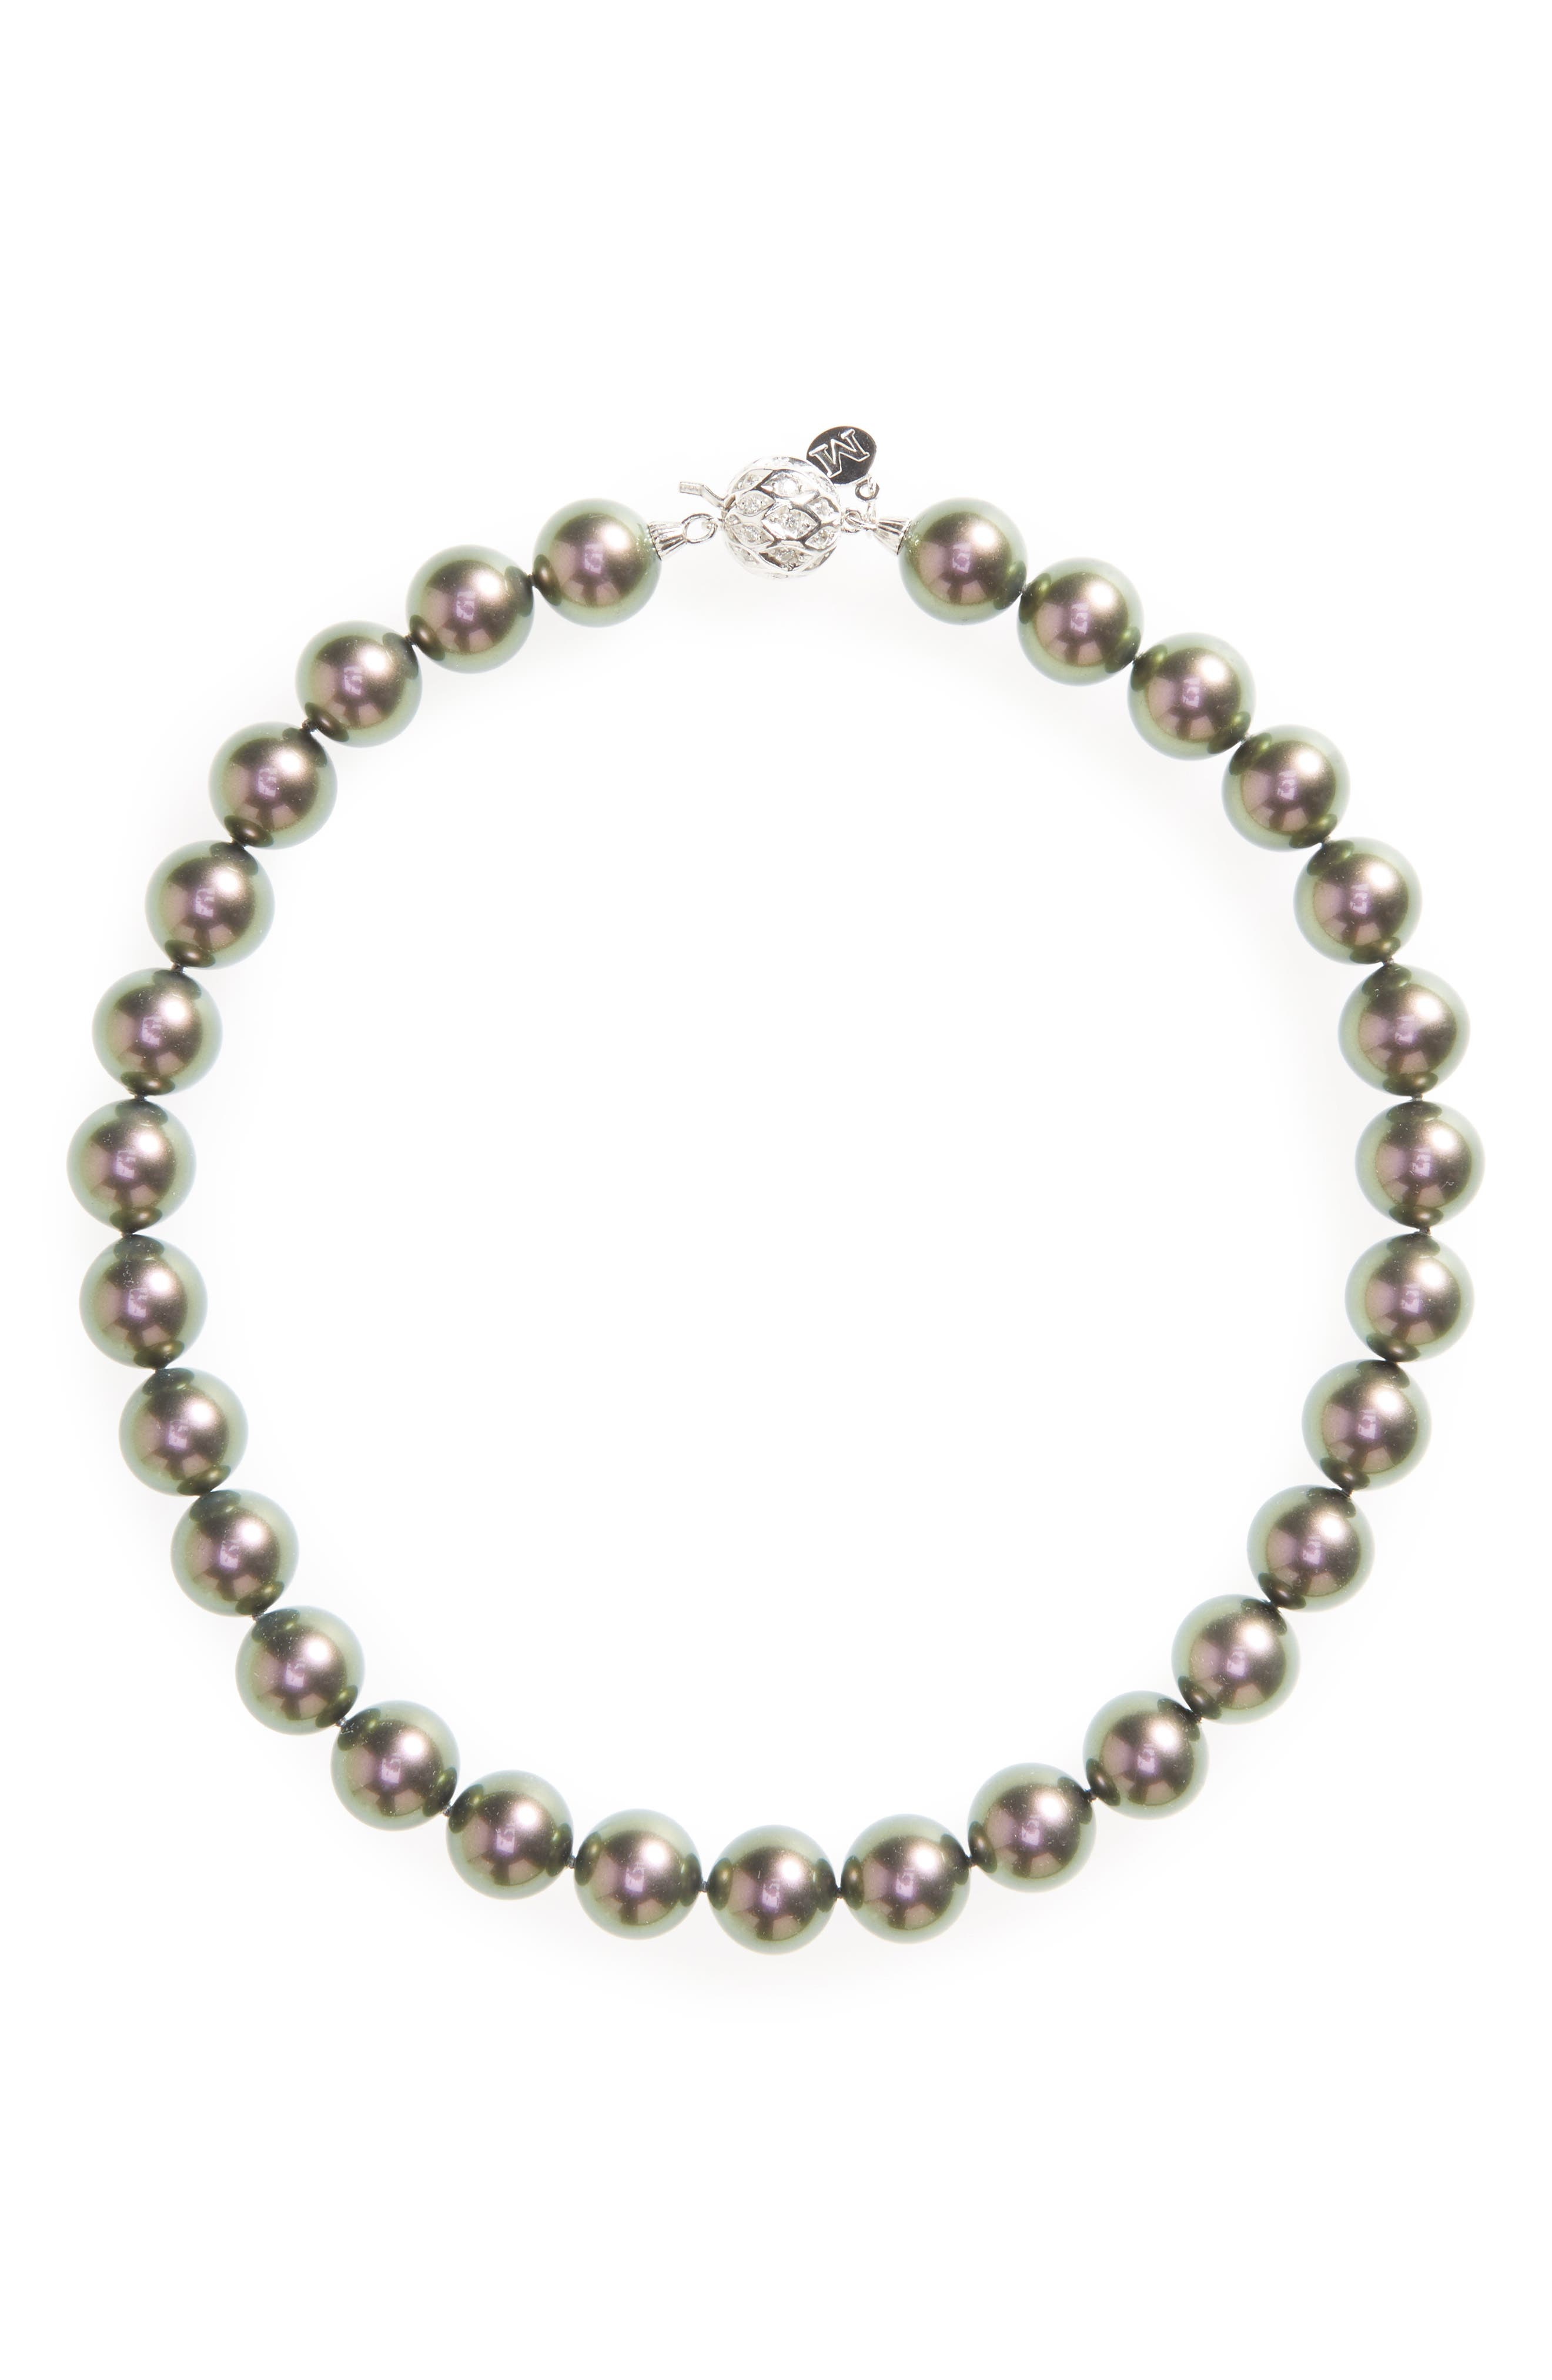 14mm Simulated Pearl Strand Necklace,                             Main thumbnail 1, color,                             020